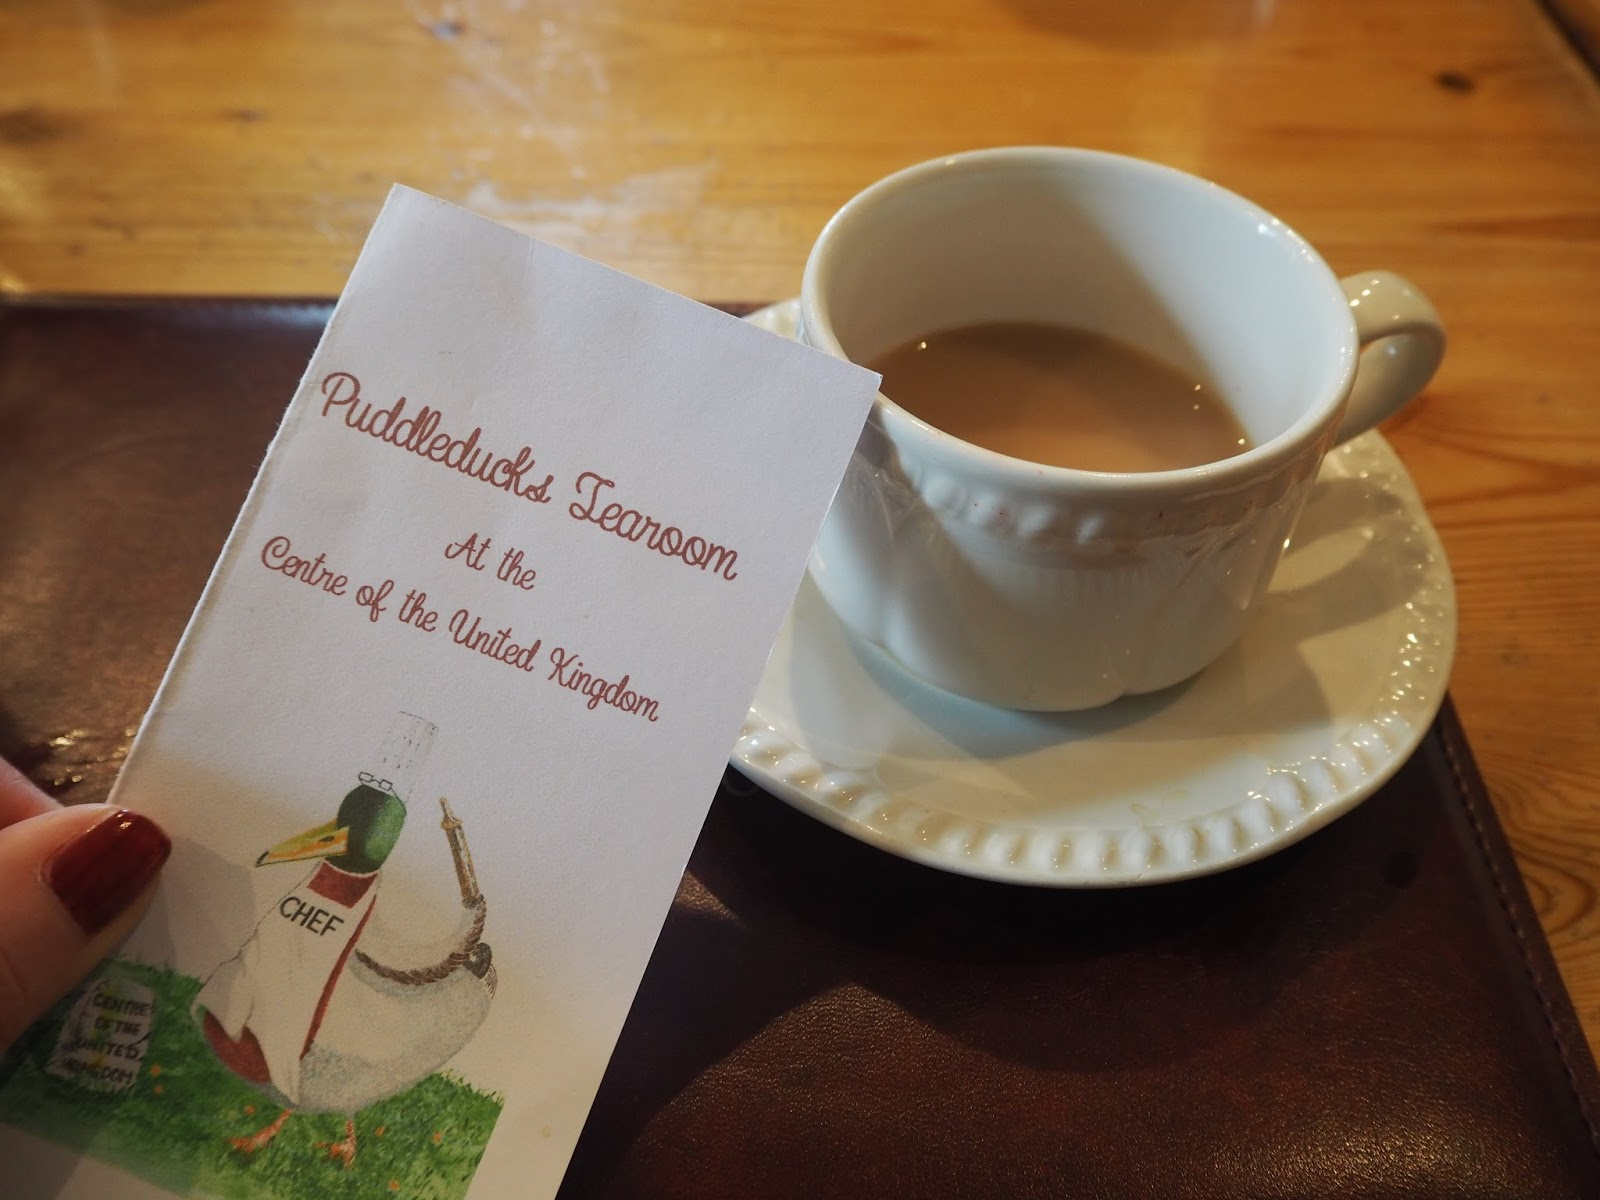 Puddleducks tearoom, dunsop Bridge